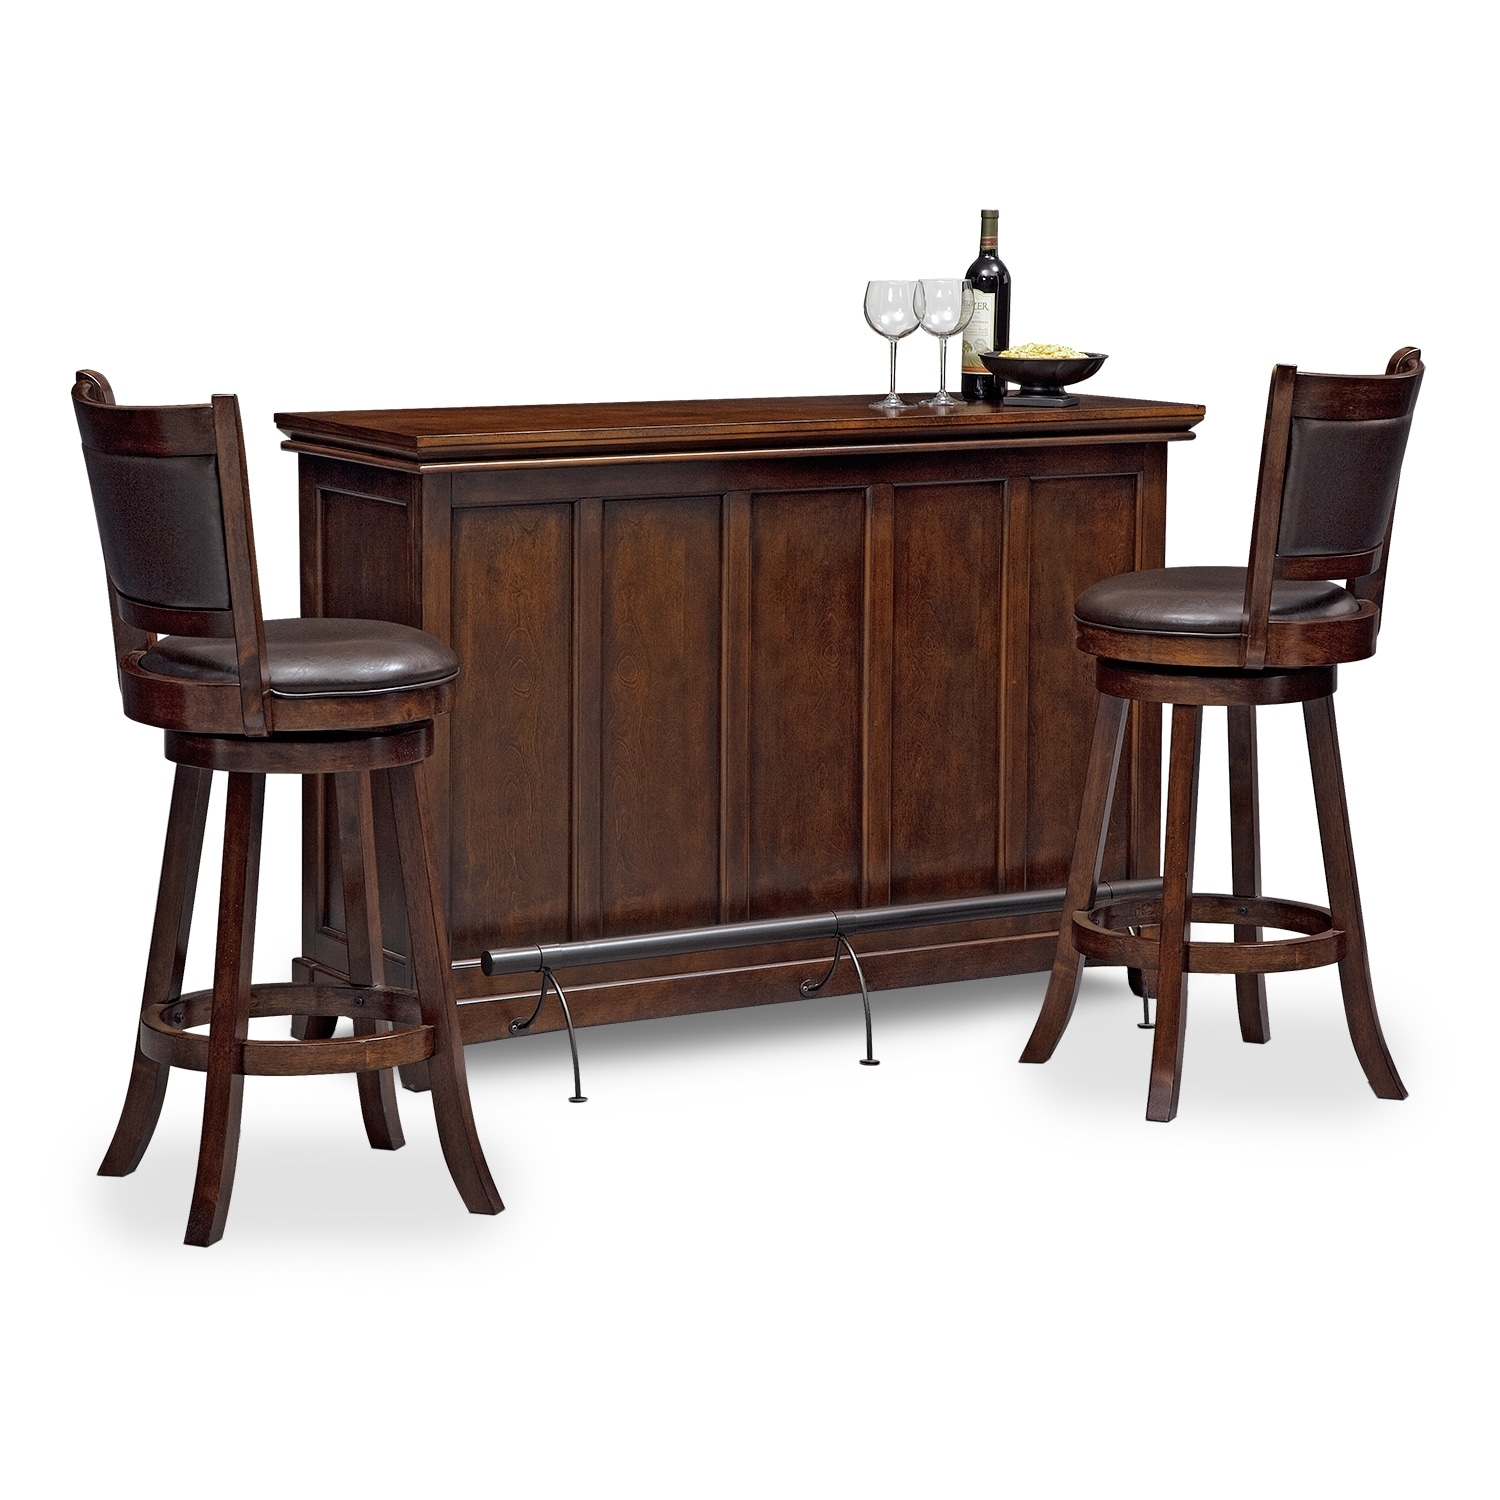 Accent and Occasional Furniture - Carlton Everly 3 Pc. Bar Set